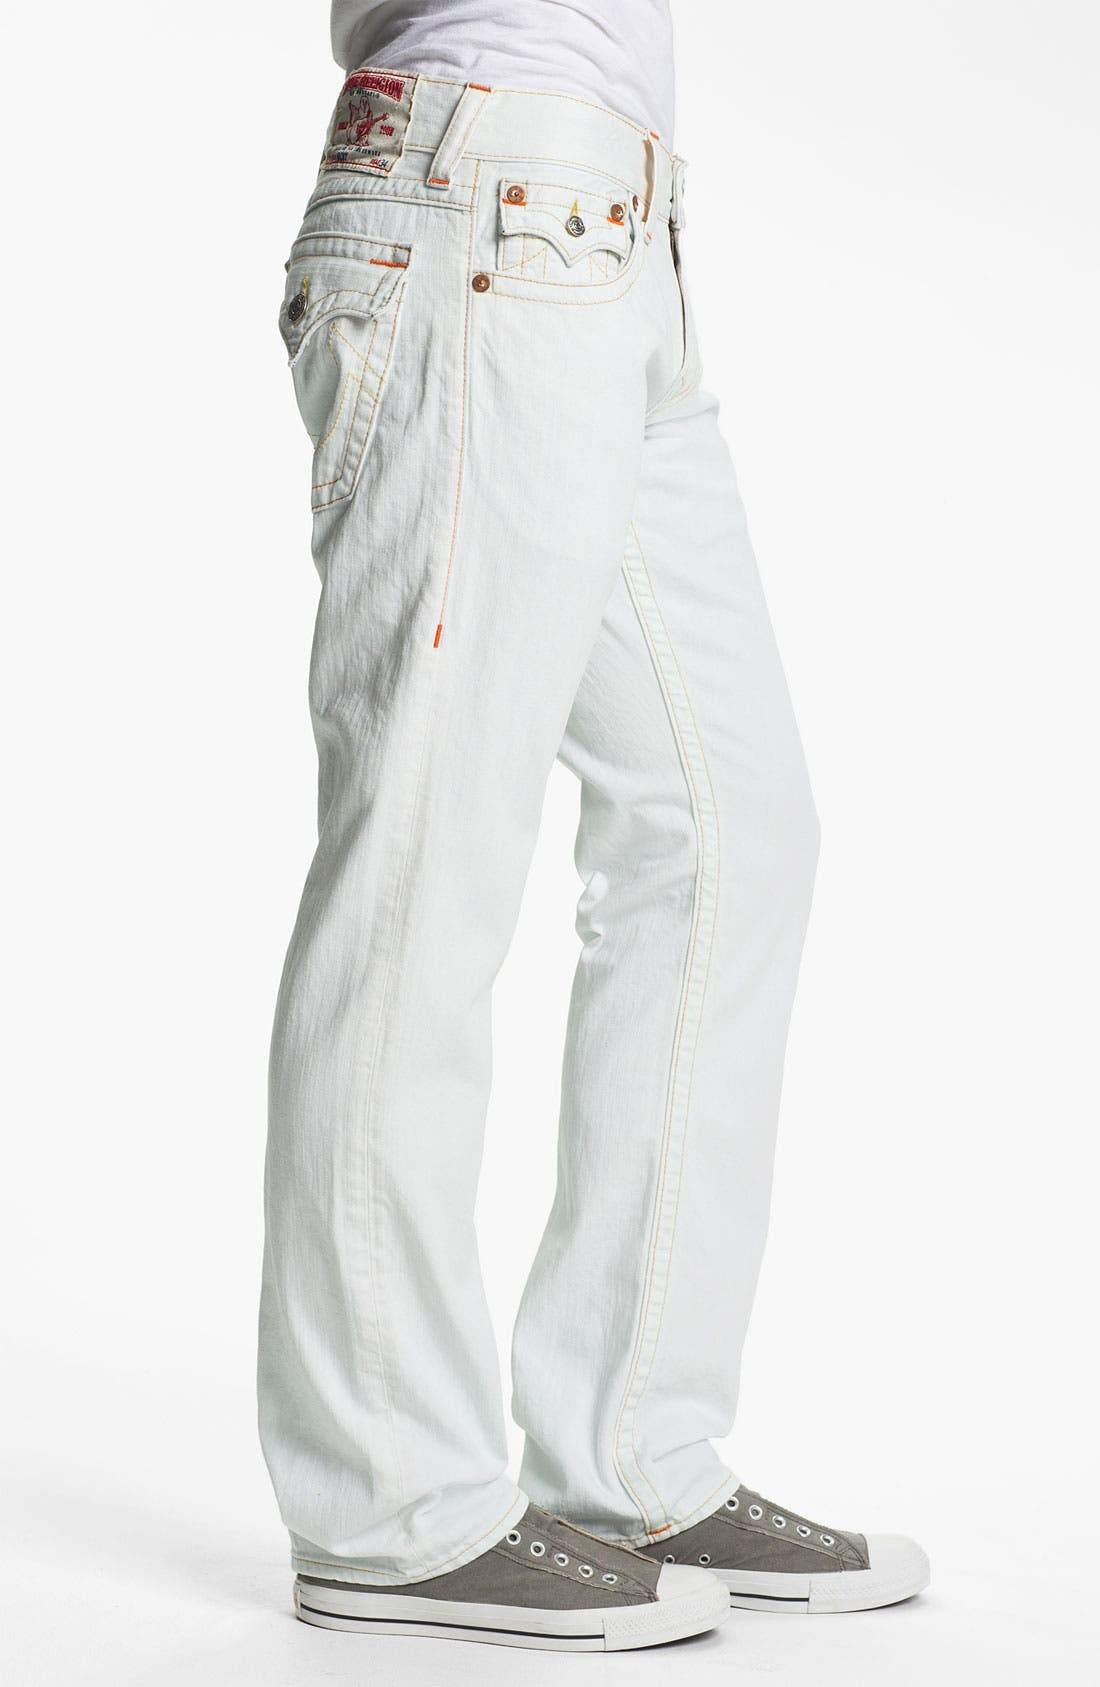 Alternate Image 3  - True Religion Brand Jeans 'Ricky' Straight Leg Jeans (Bleached) (Online Exclusive)